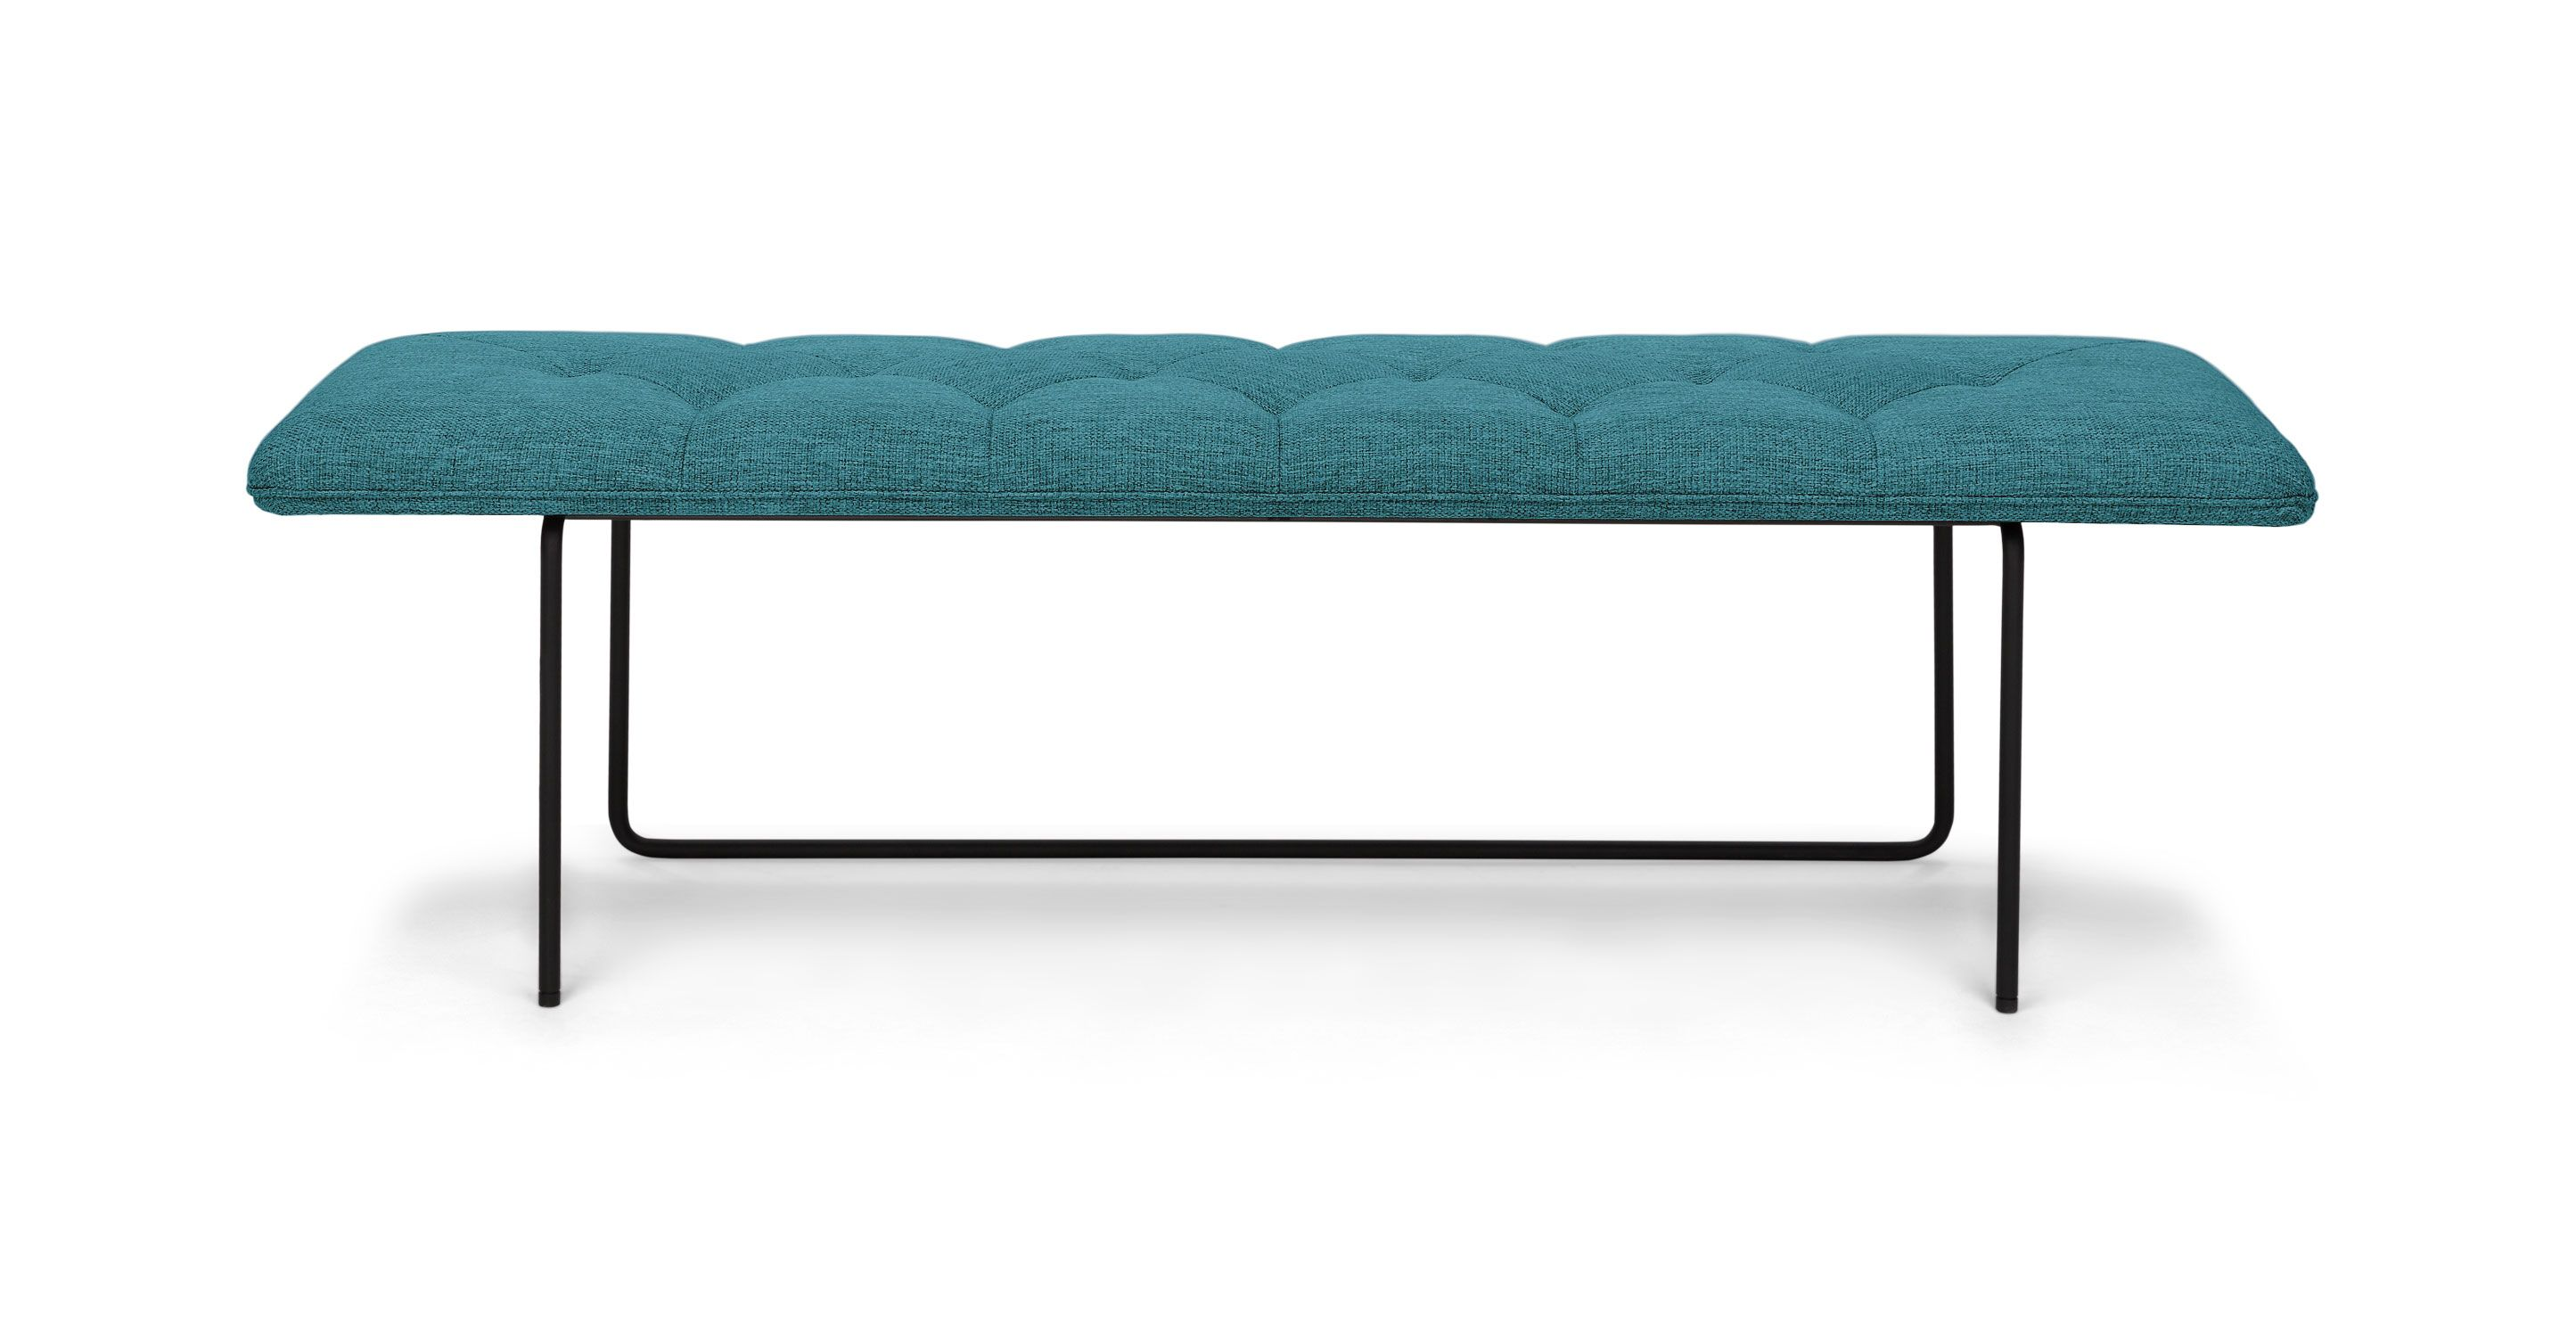 Horizon arizona turquoise bench benches article - Discount living room furniture near me ...